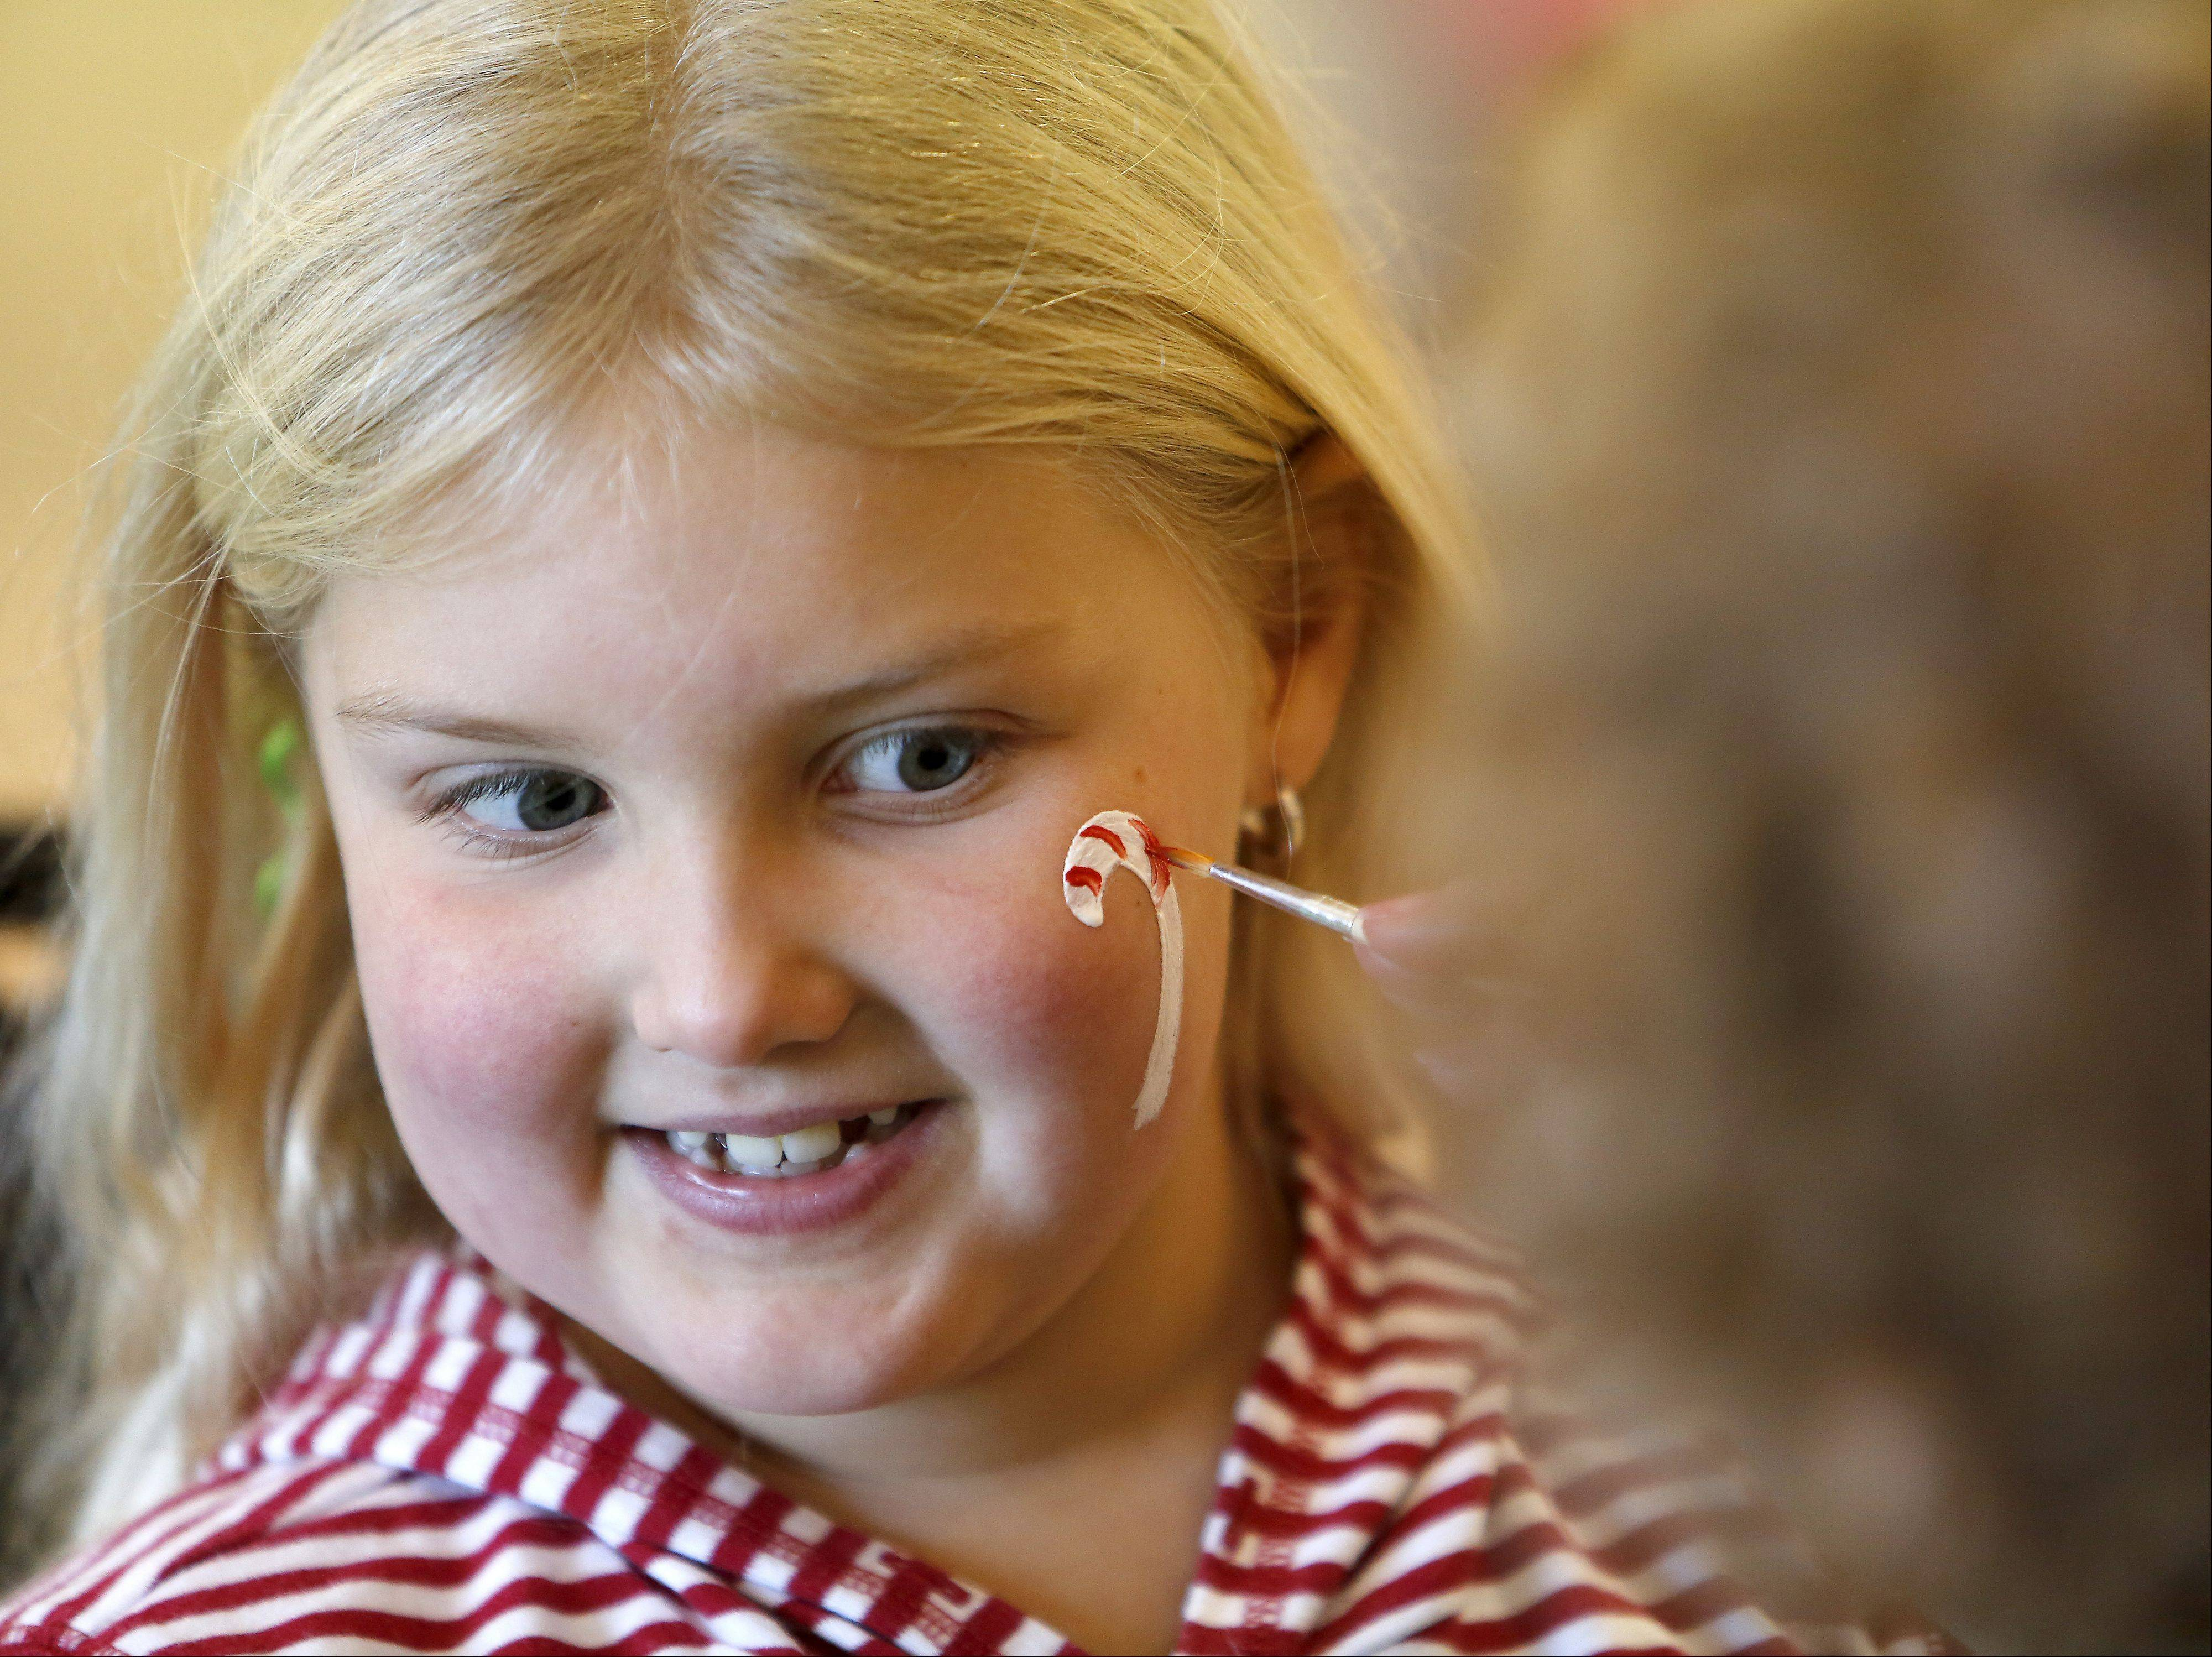 Olivia Barnes, 6, of Elburn gets a candy cane painted on her face during the Kiwanis of Campton Hills holiday kickoff party Saturday.